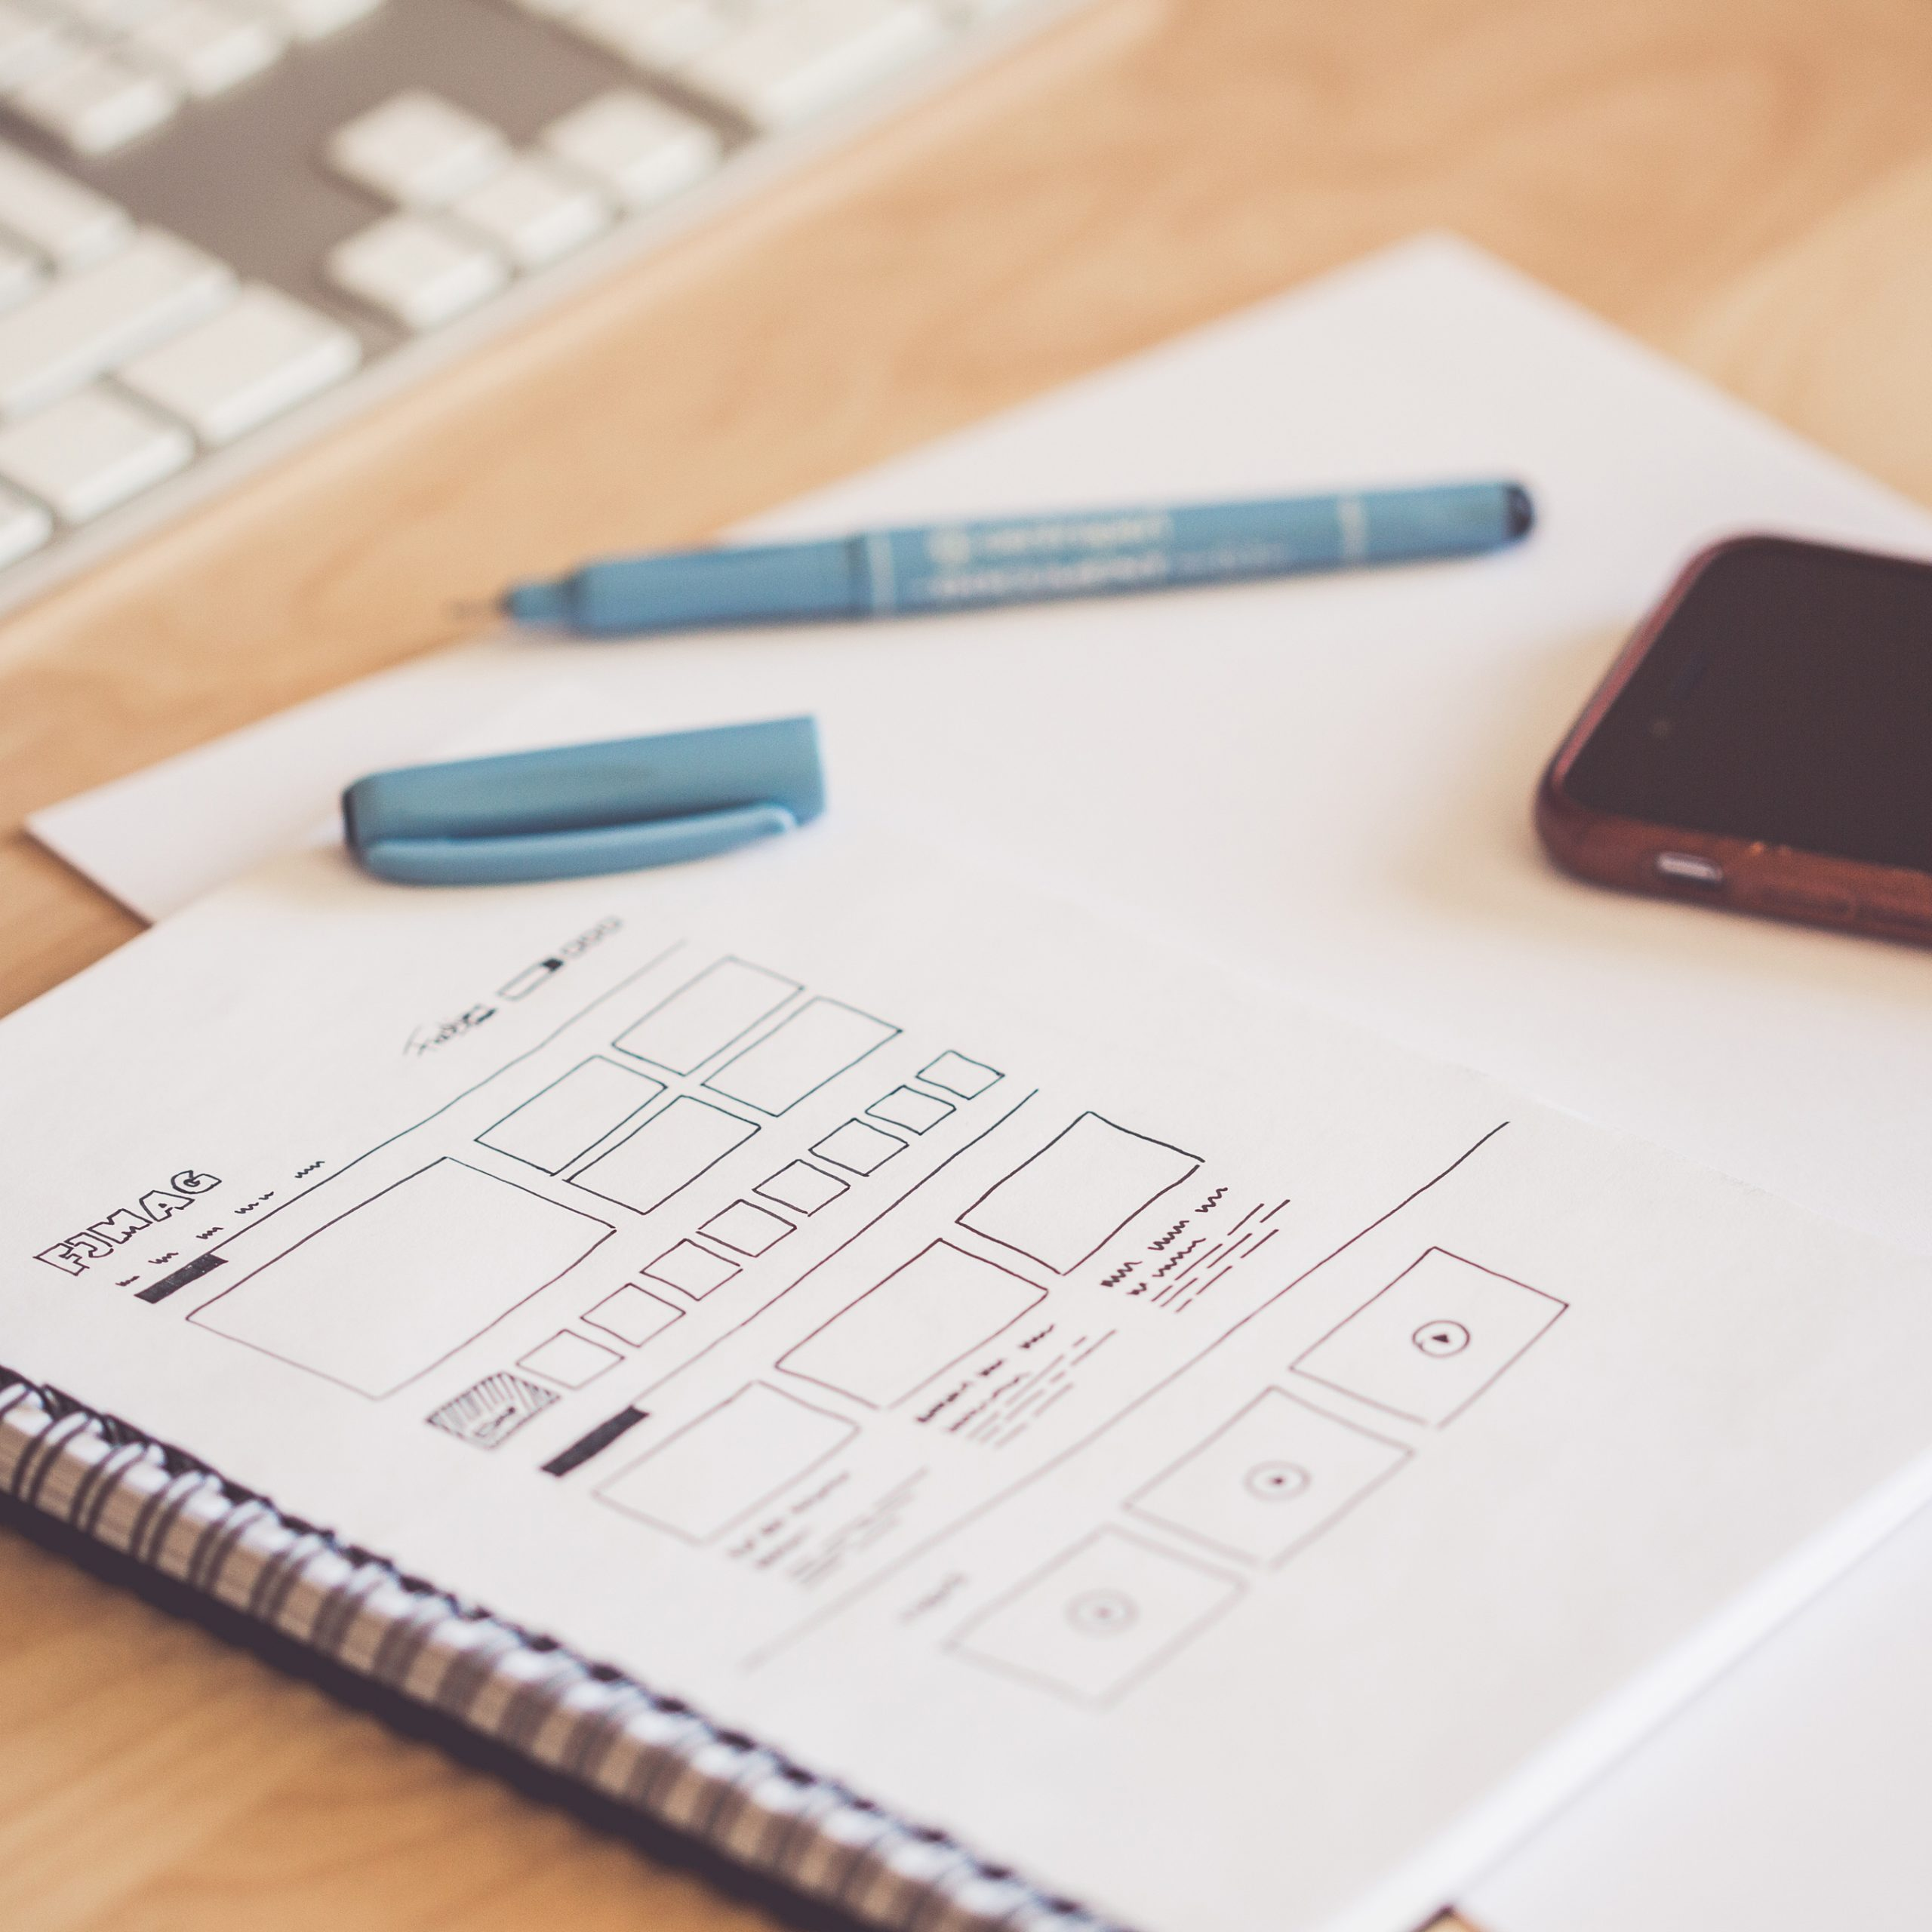 wireframing sketch for website